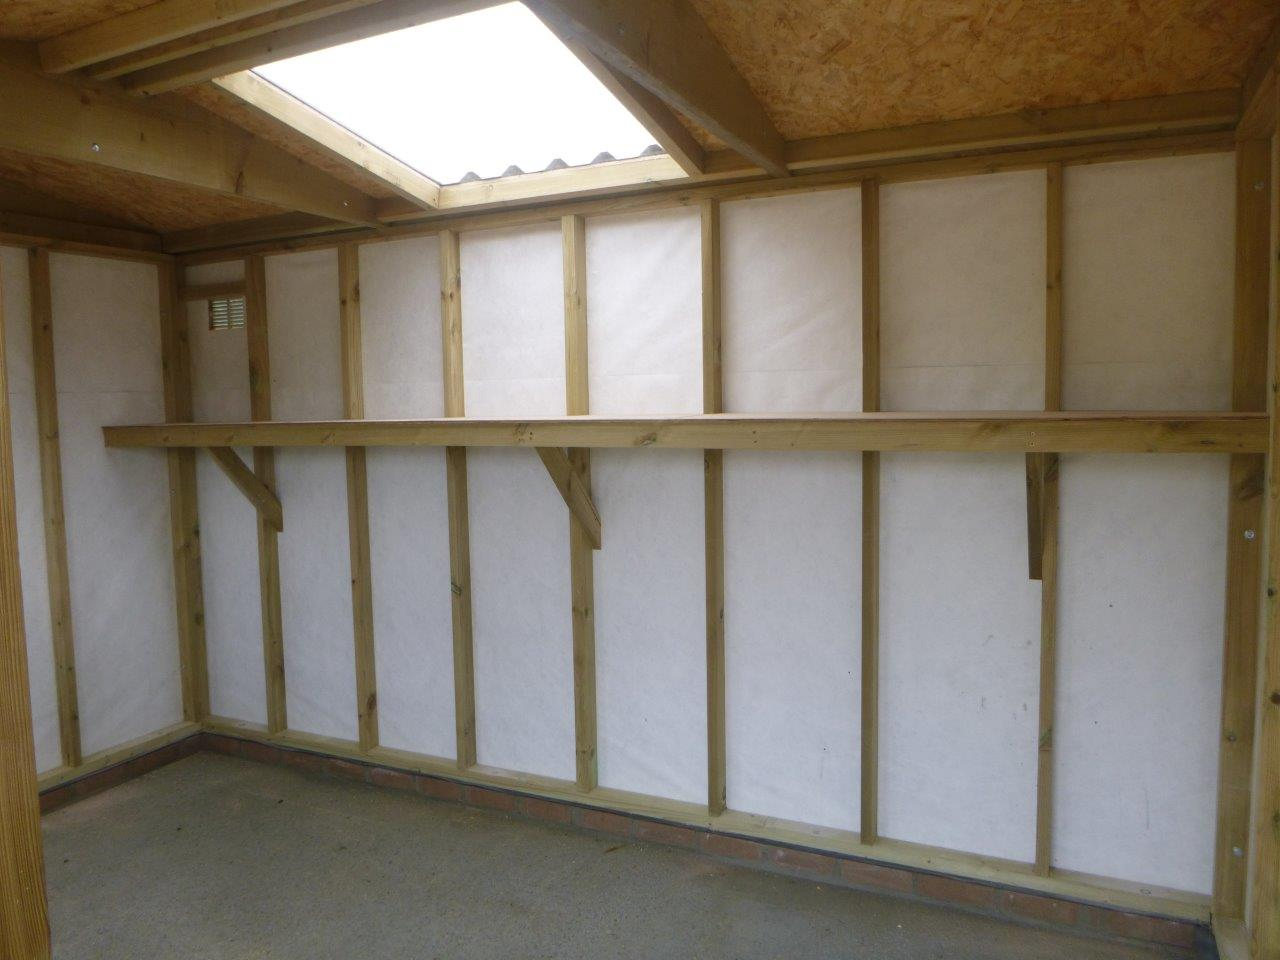 Shelves and roof light